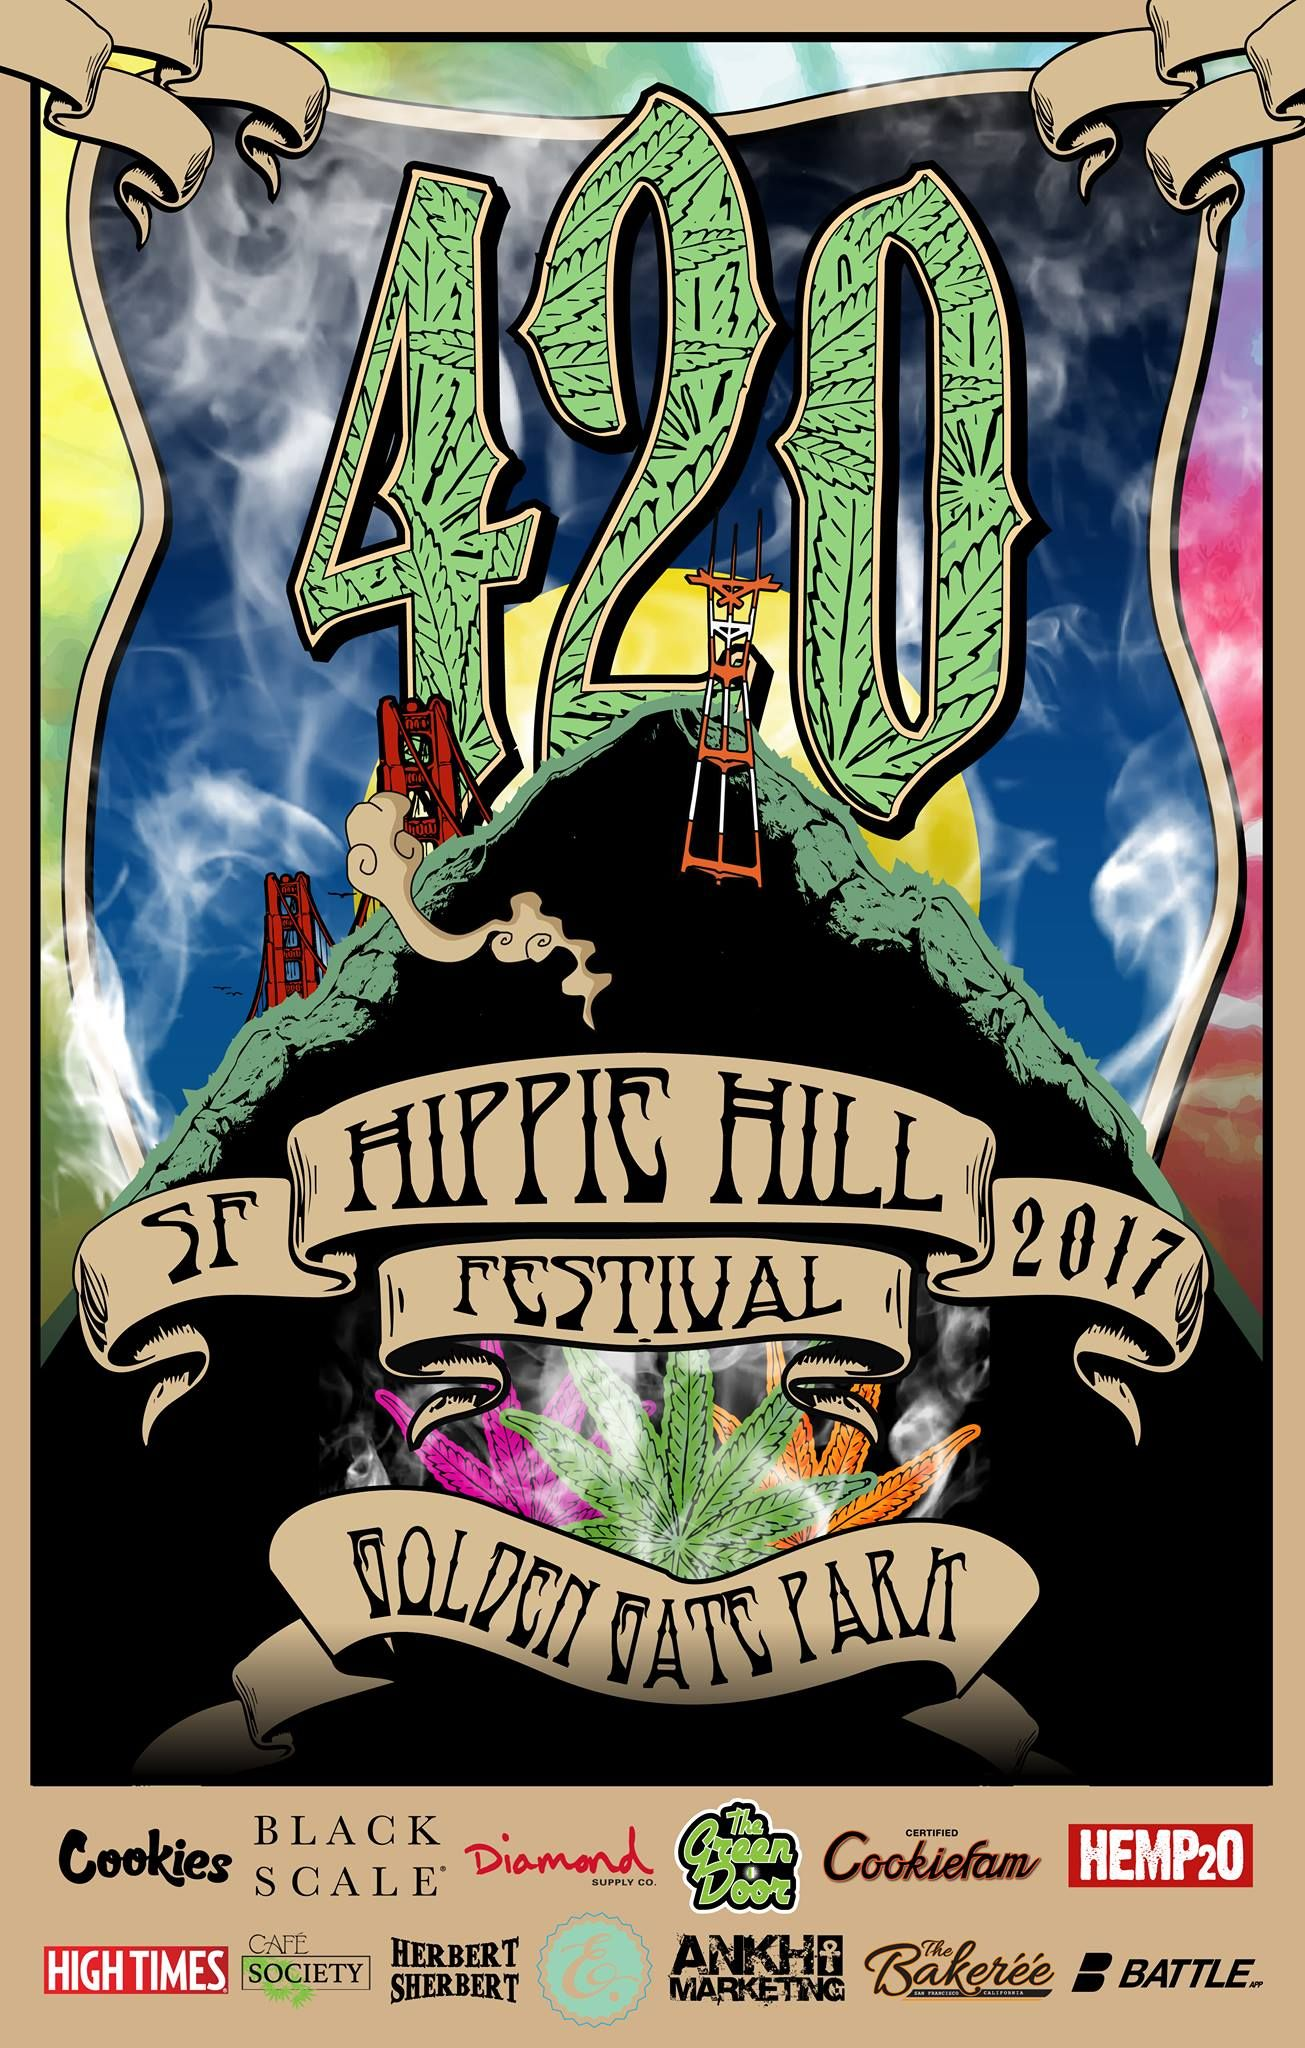 Official 420 Hippie Hill event poster.